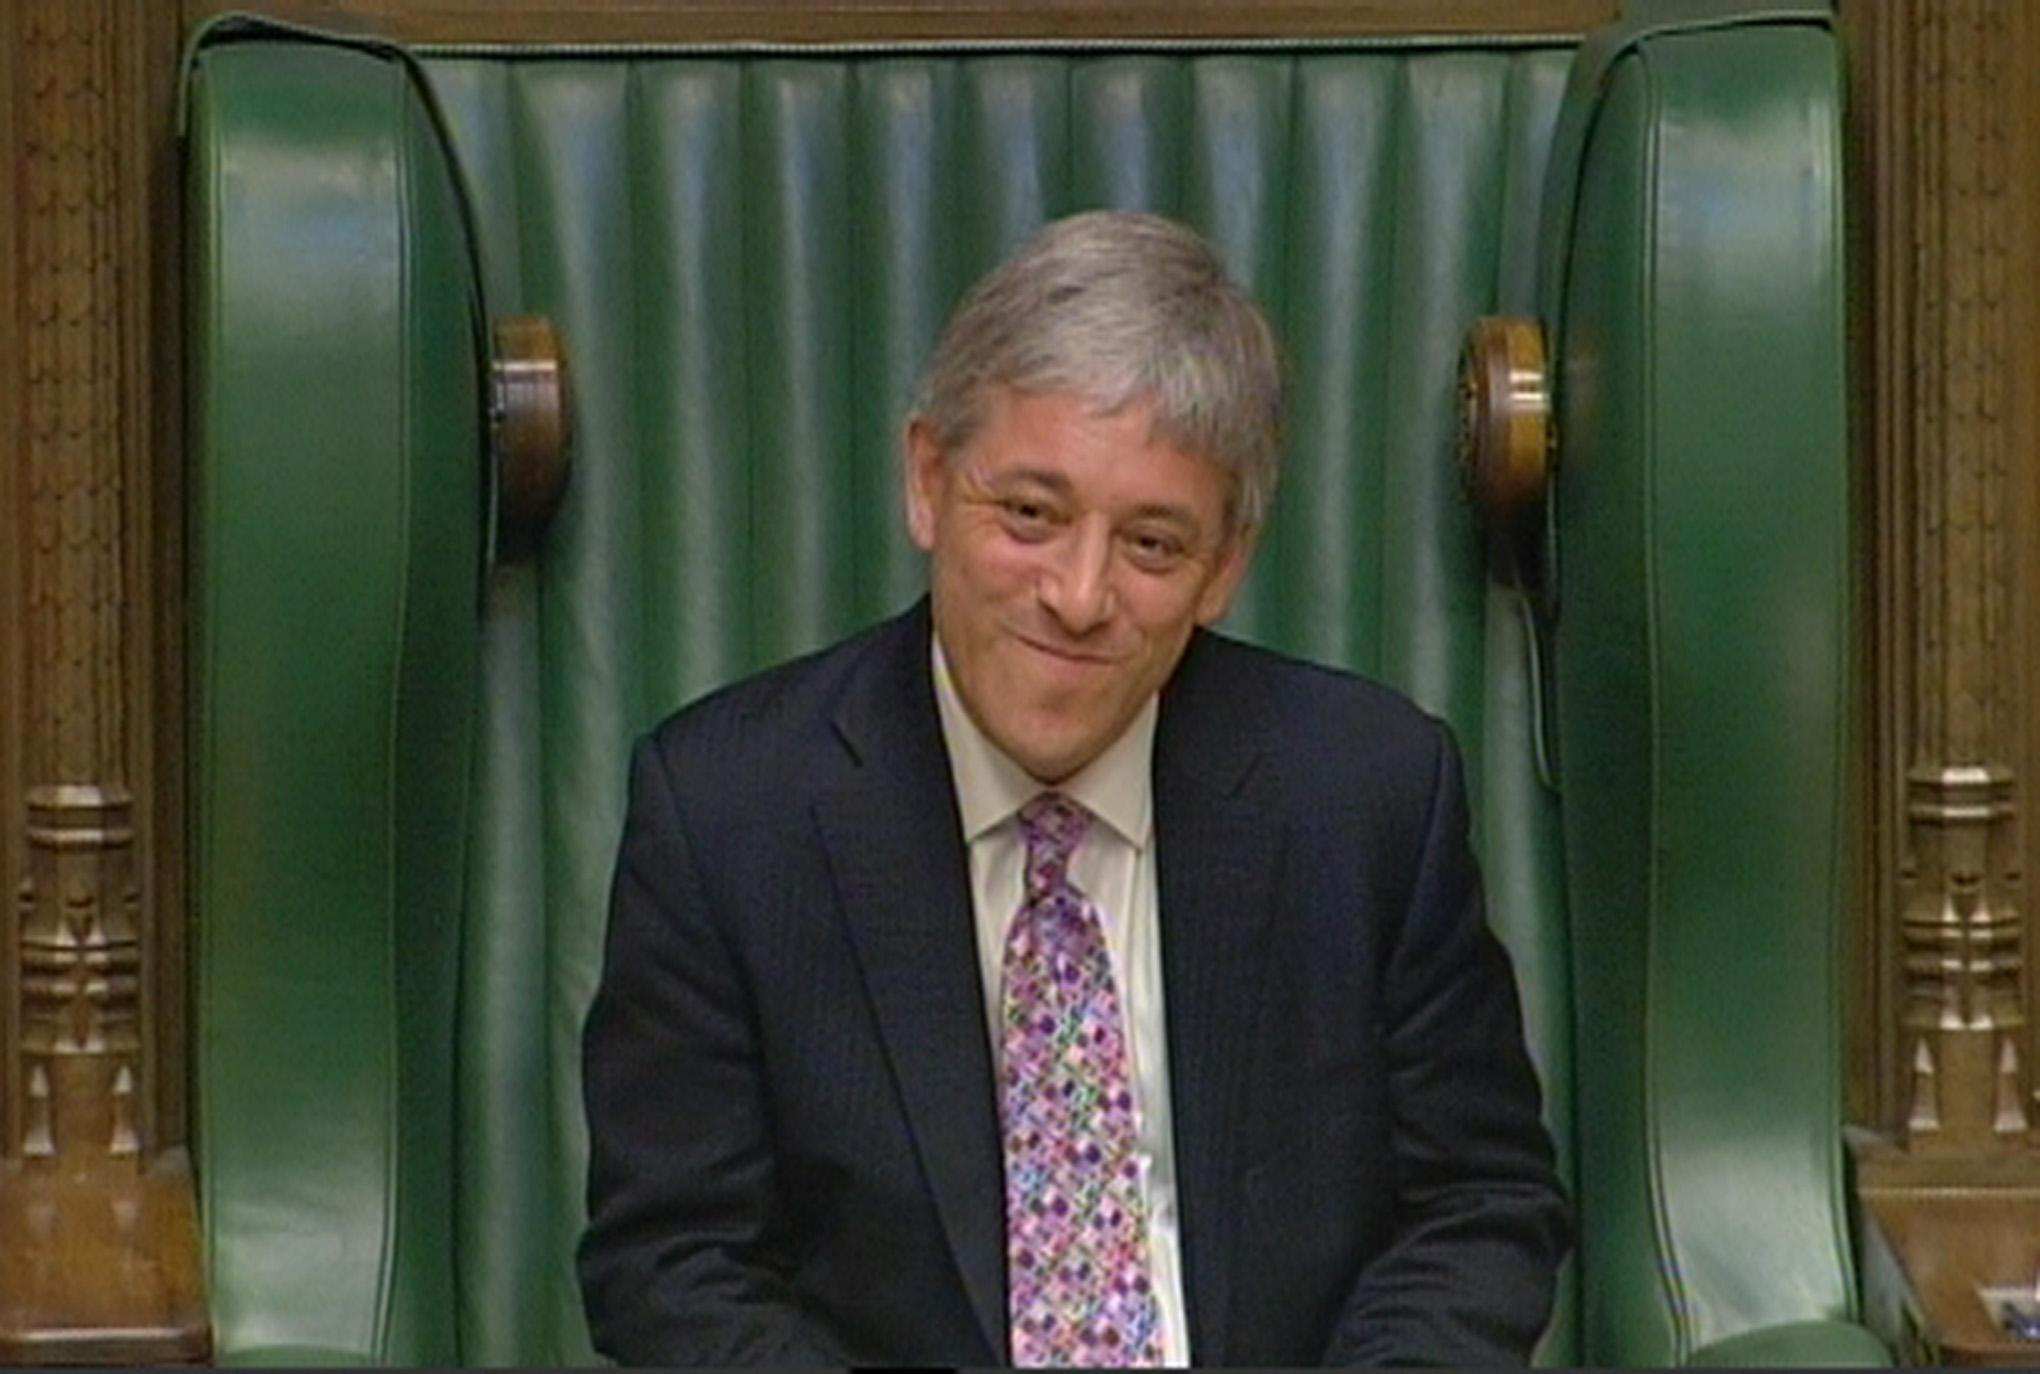 Early days: Mr Bercow as Speaker in June 2009 after being voted in by secret ballot. (PA)